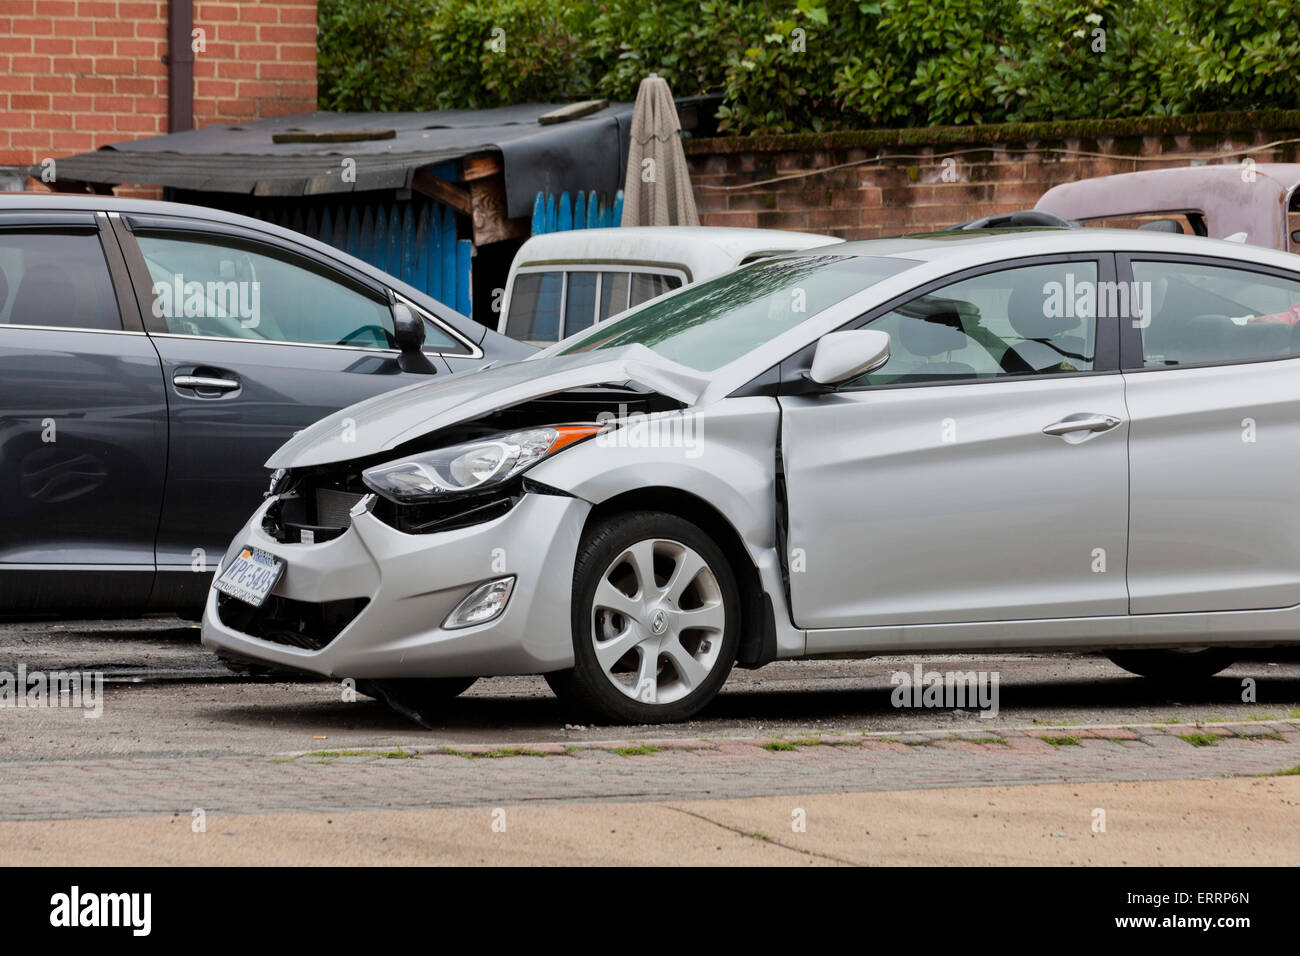 Car with front end collision damage - USA - Stock Image